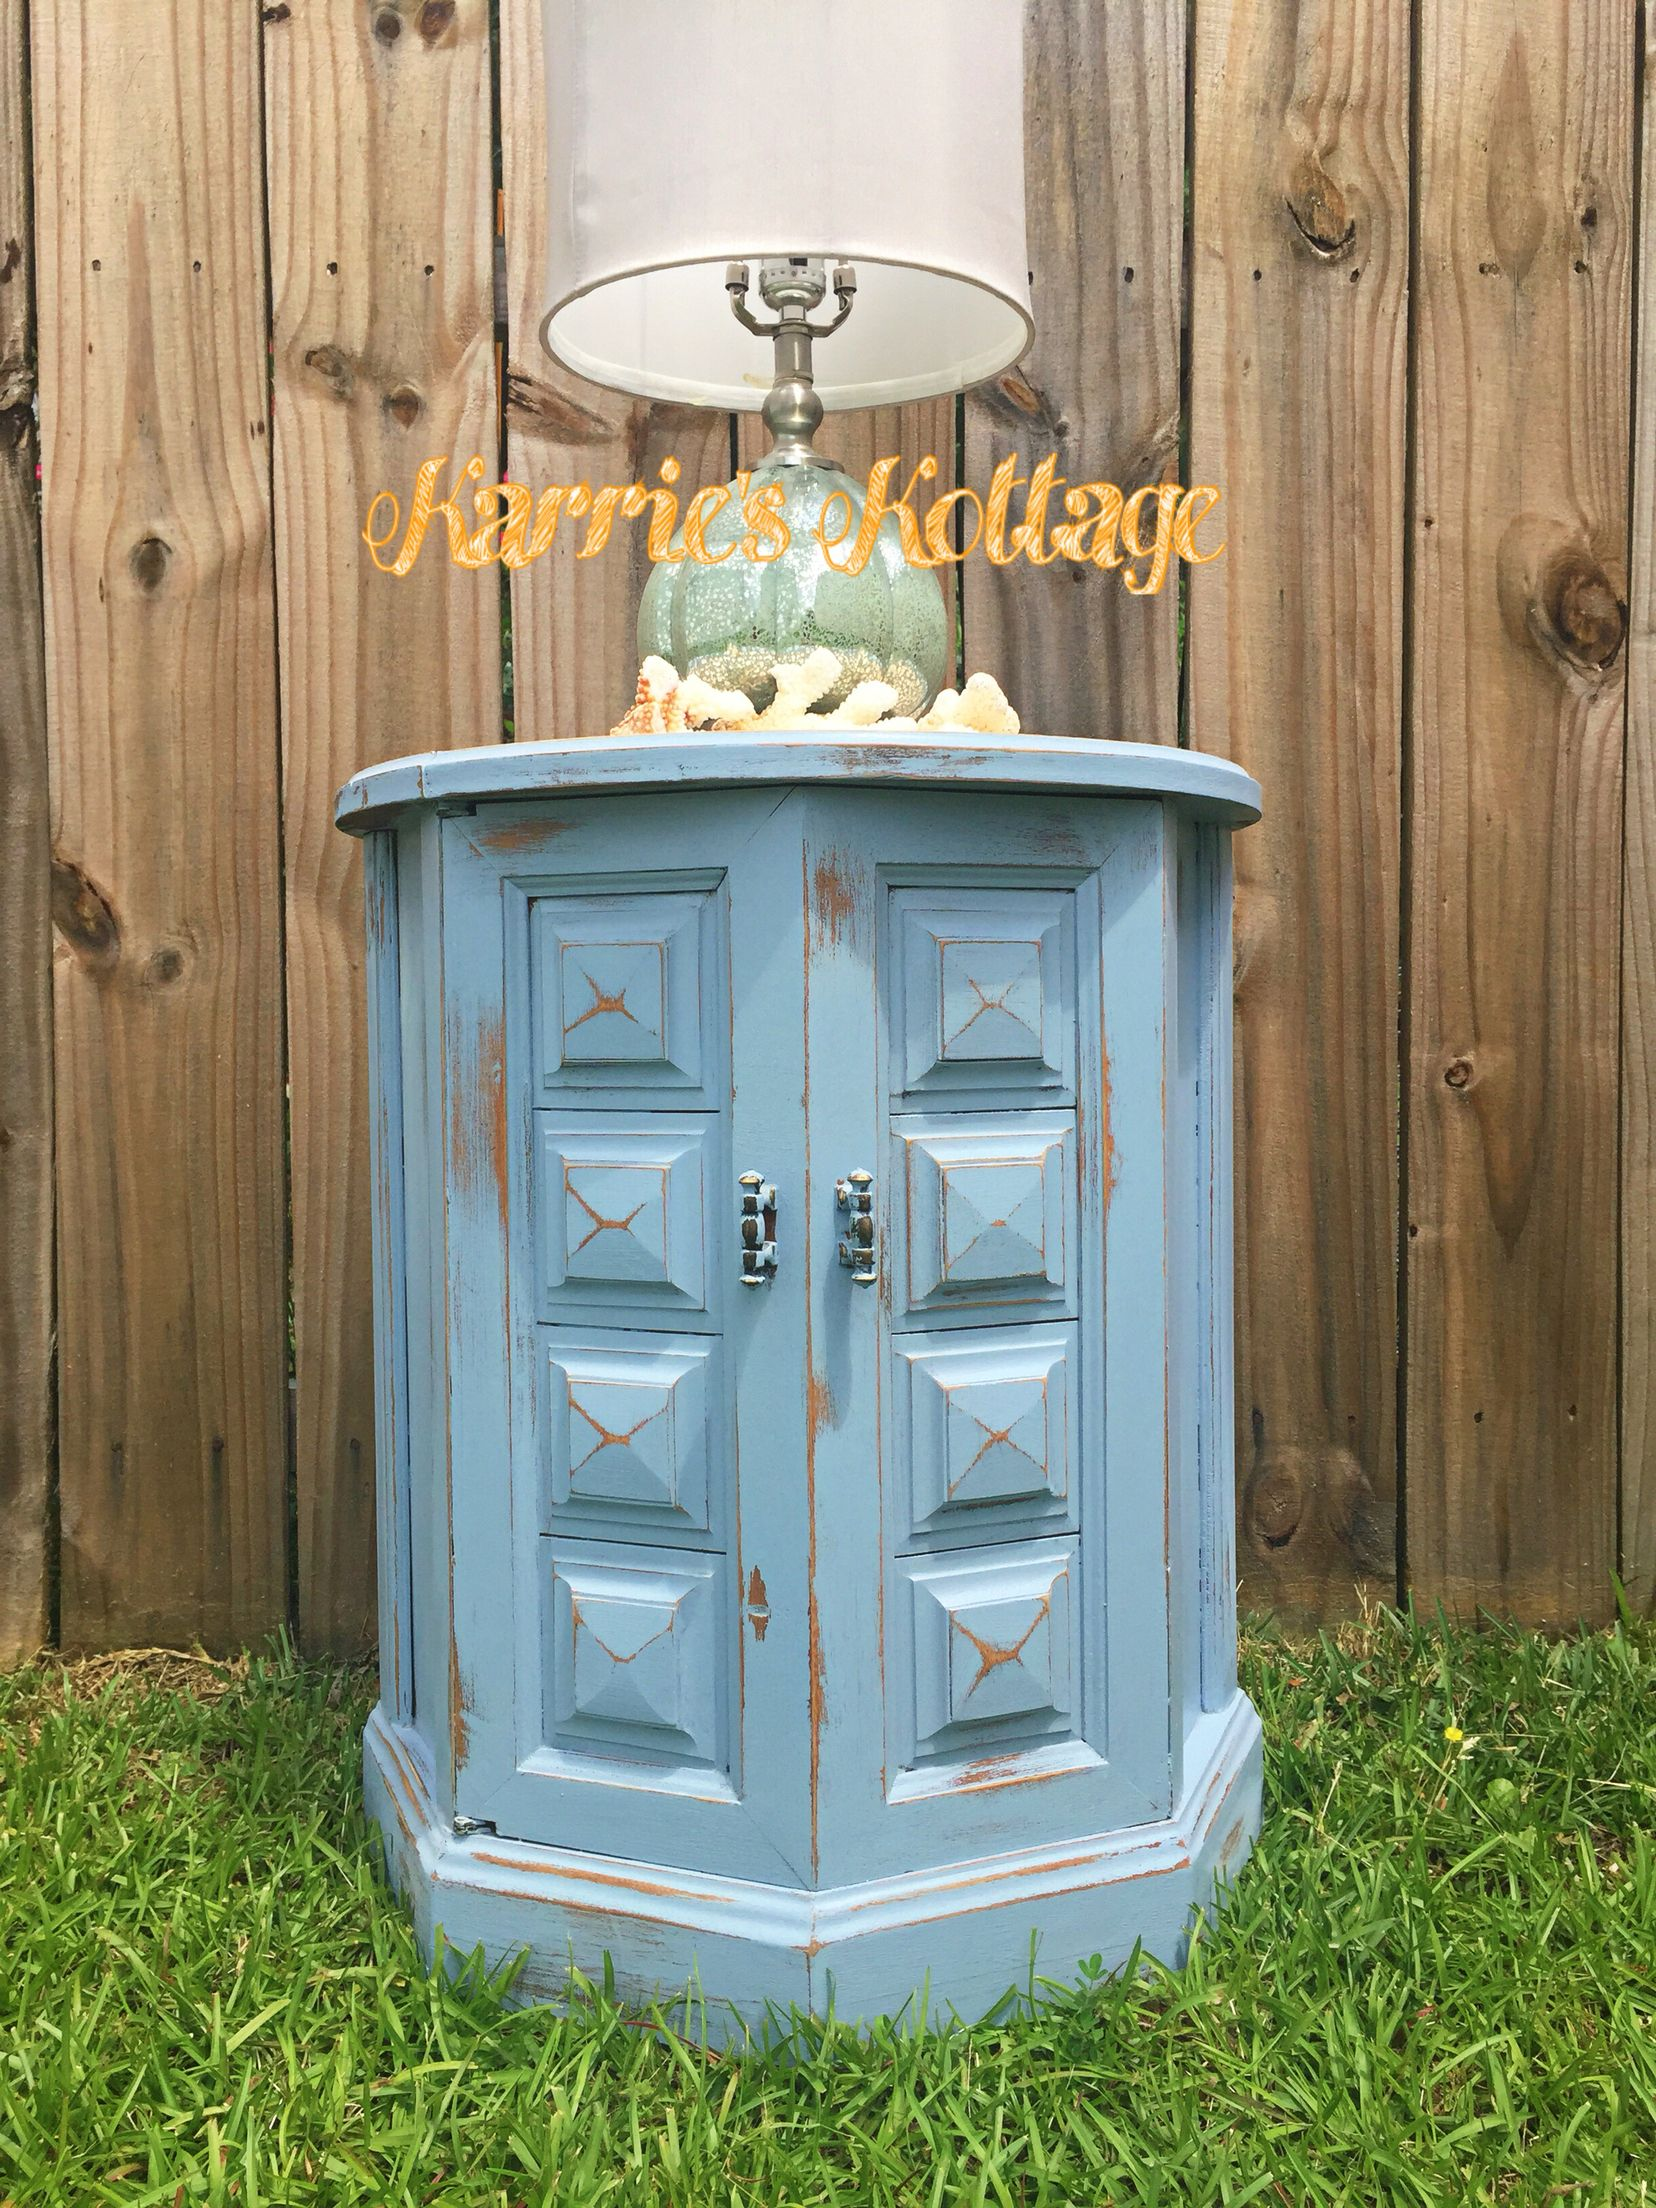 Elegant Beautiful Painted Light Blue Chest With Doors. Hand Painted Side Table  Distressed. Coastal Chic Style. Furniture Makeover From Local Artist Karrie  Farrar ...